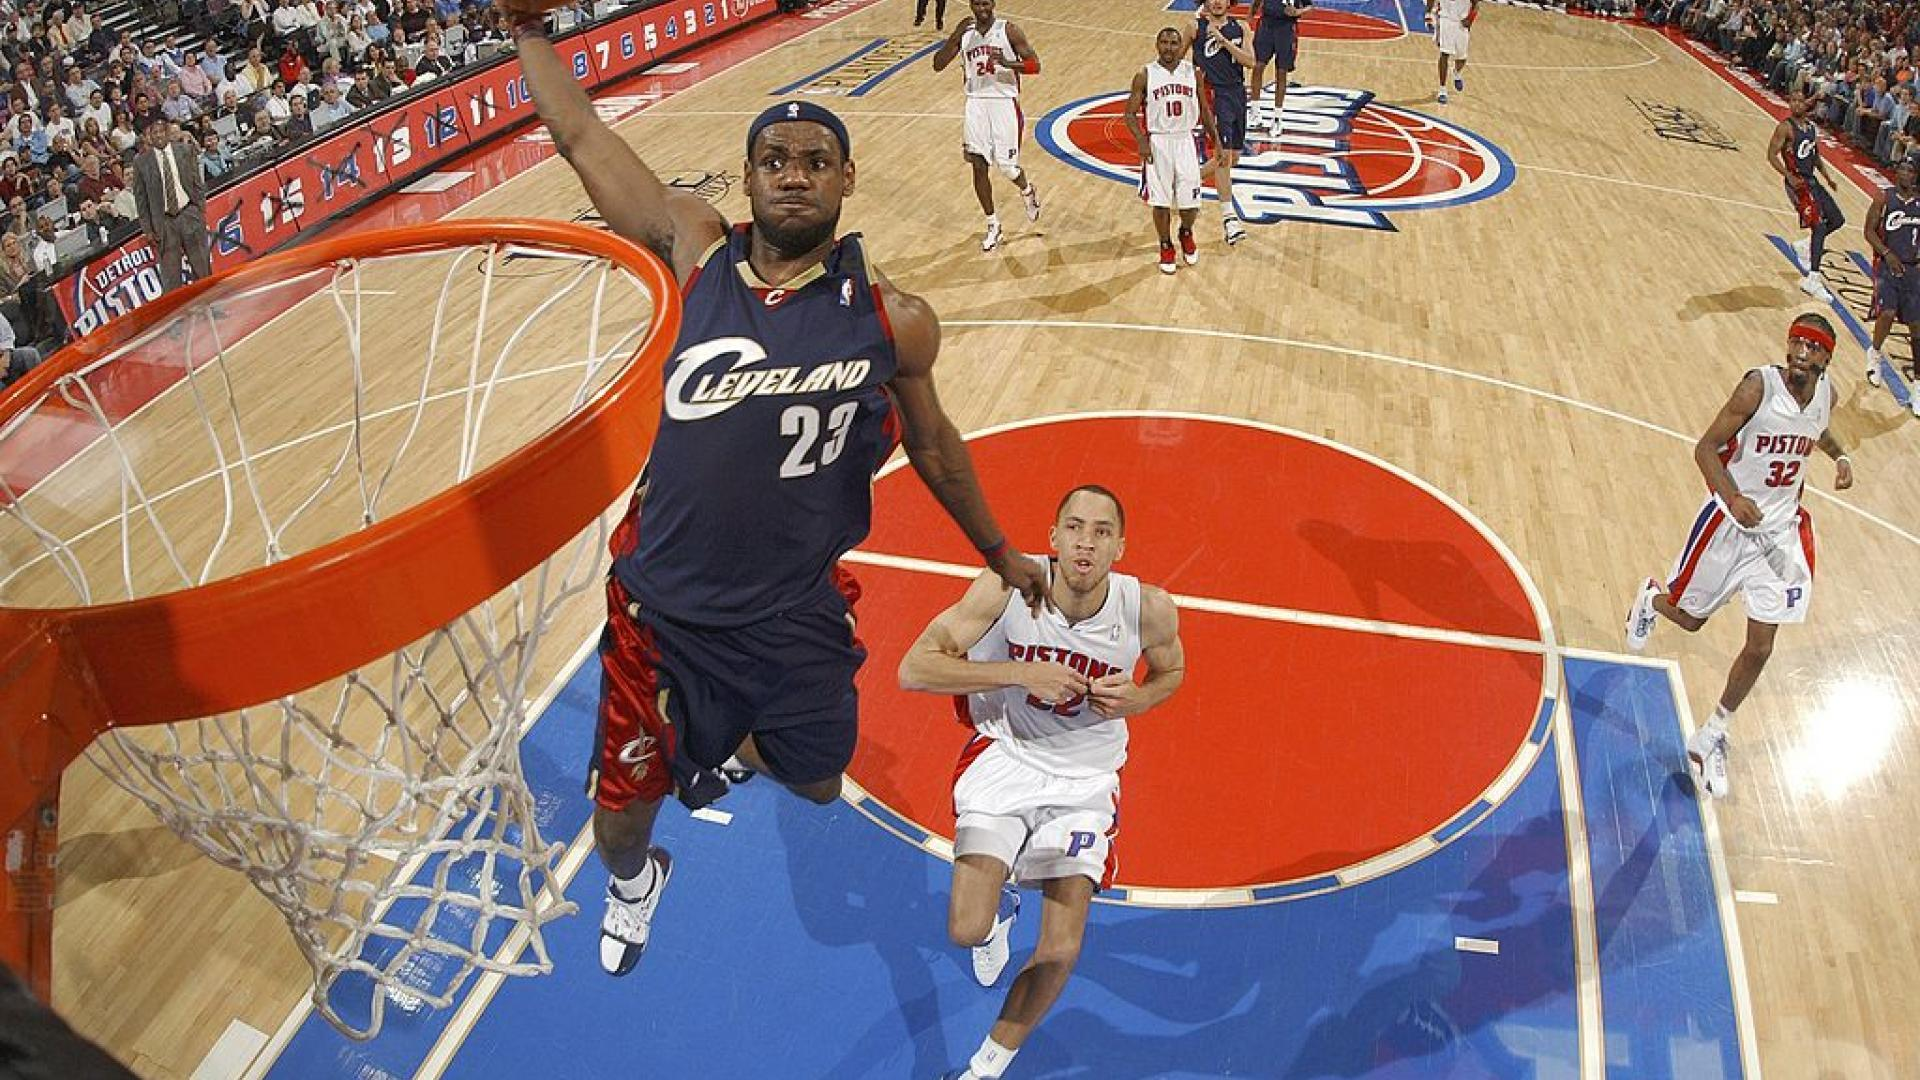 e5c0792bea4c8 Game 5 of the 2007 Eastern Conference finals was a key moment in LeBron  James  playoff lore.